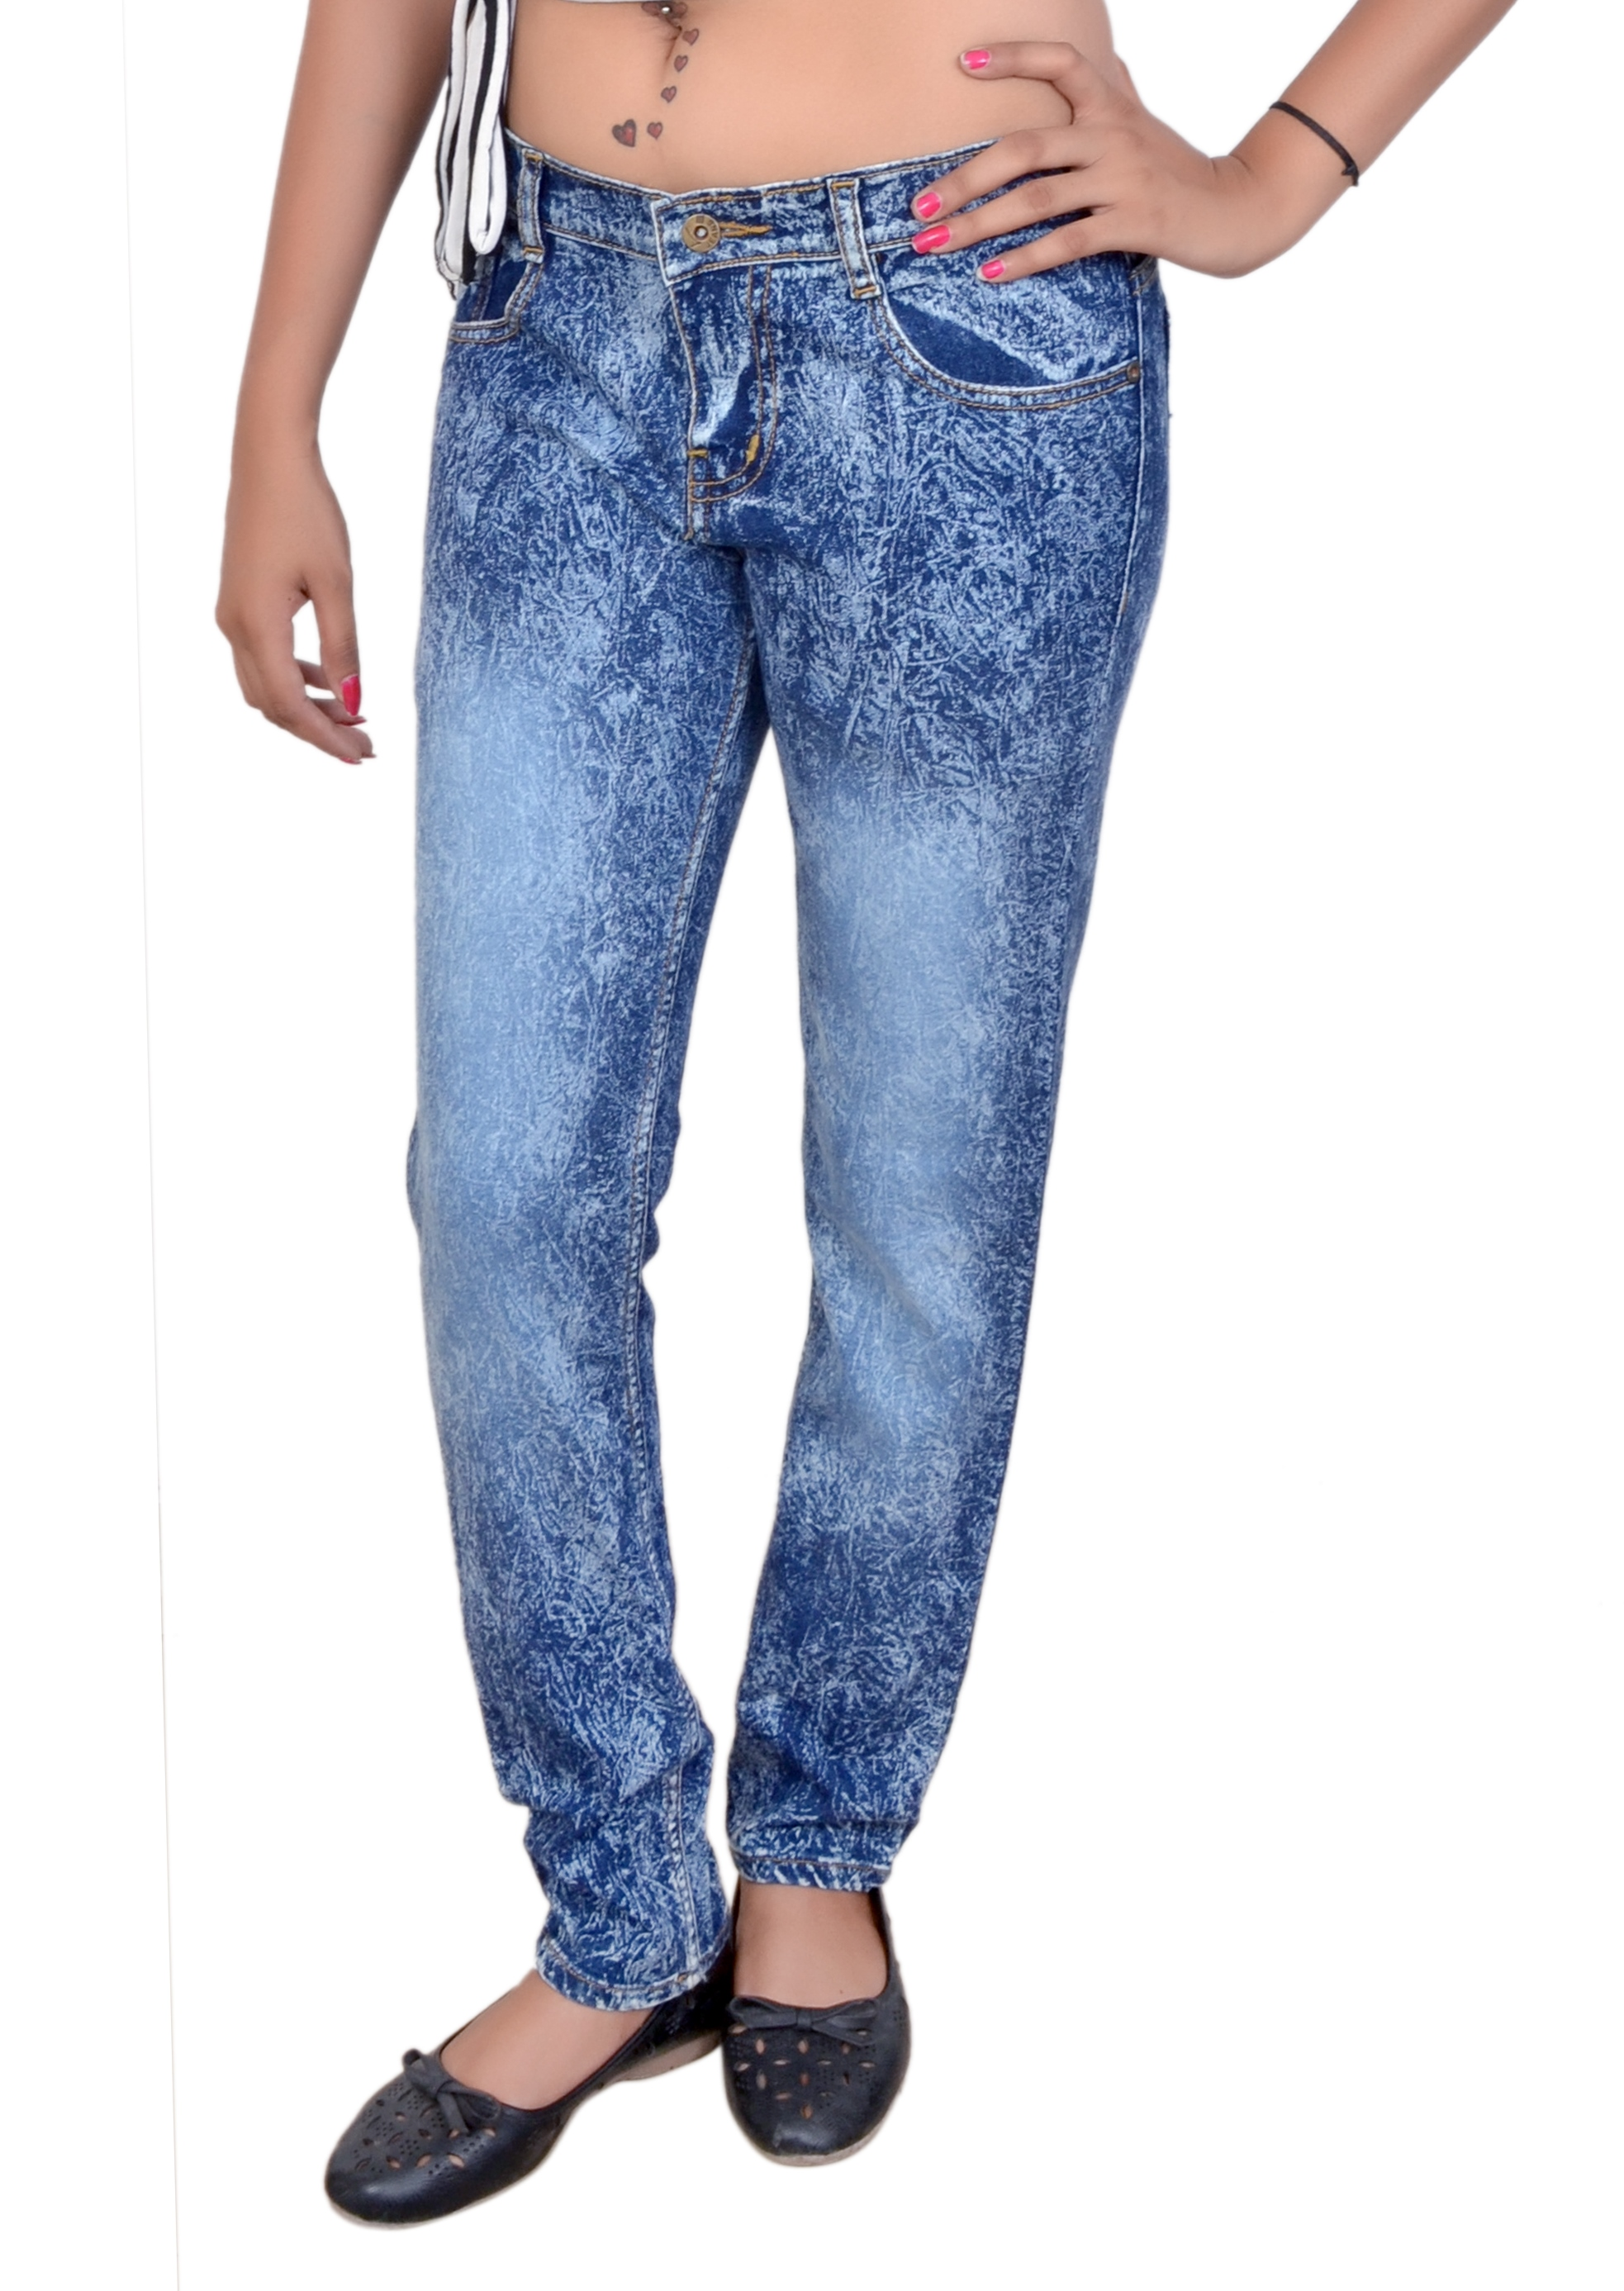 Modo Delicate Indigo Cotton Slim Fit Fashion Jeans